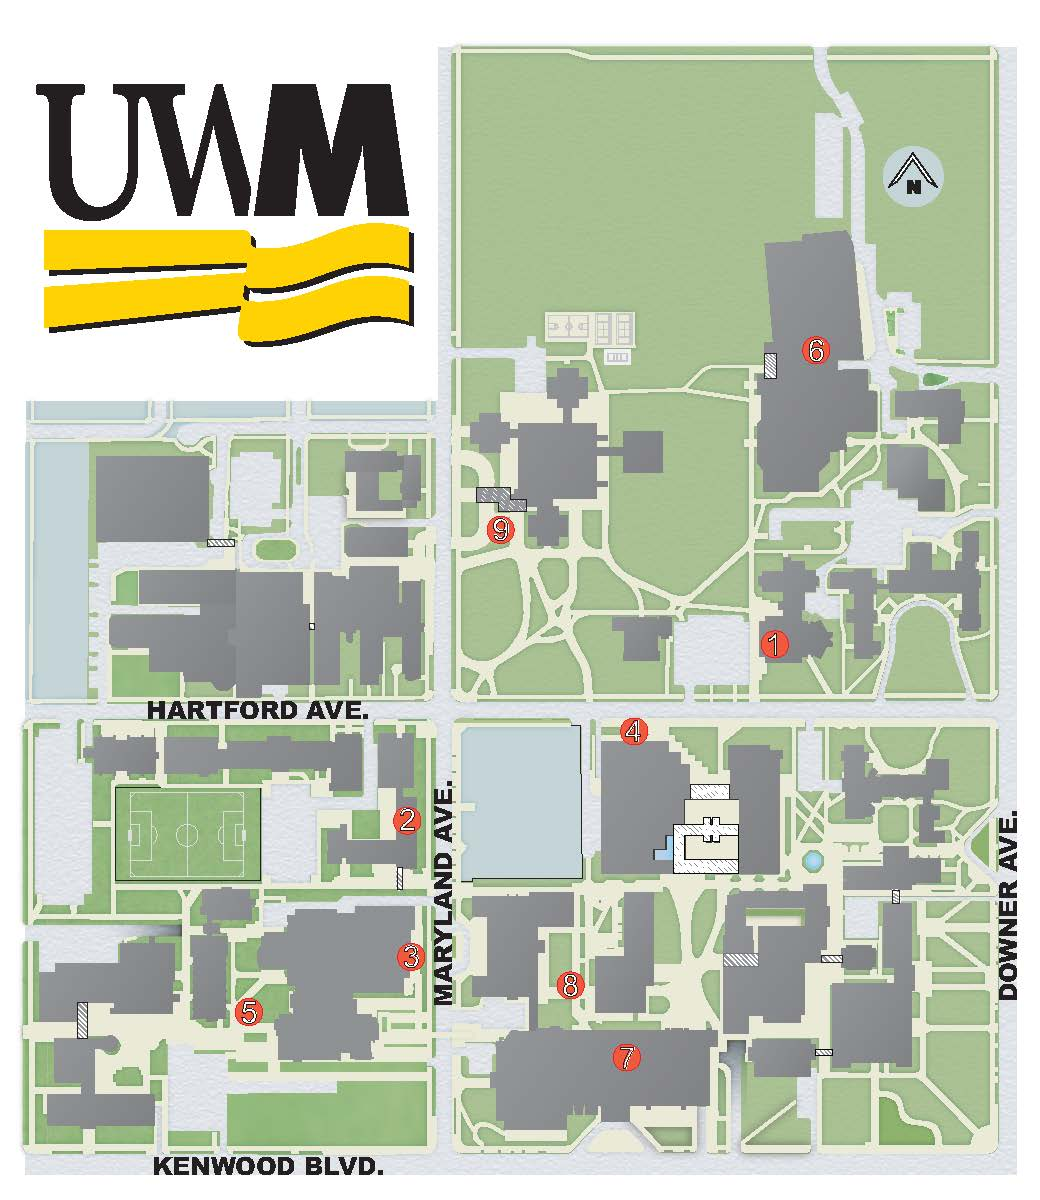 Art Uwm Campus Planning And Management